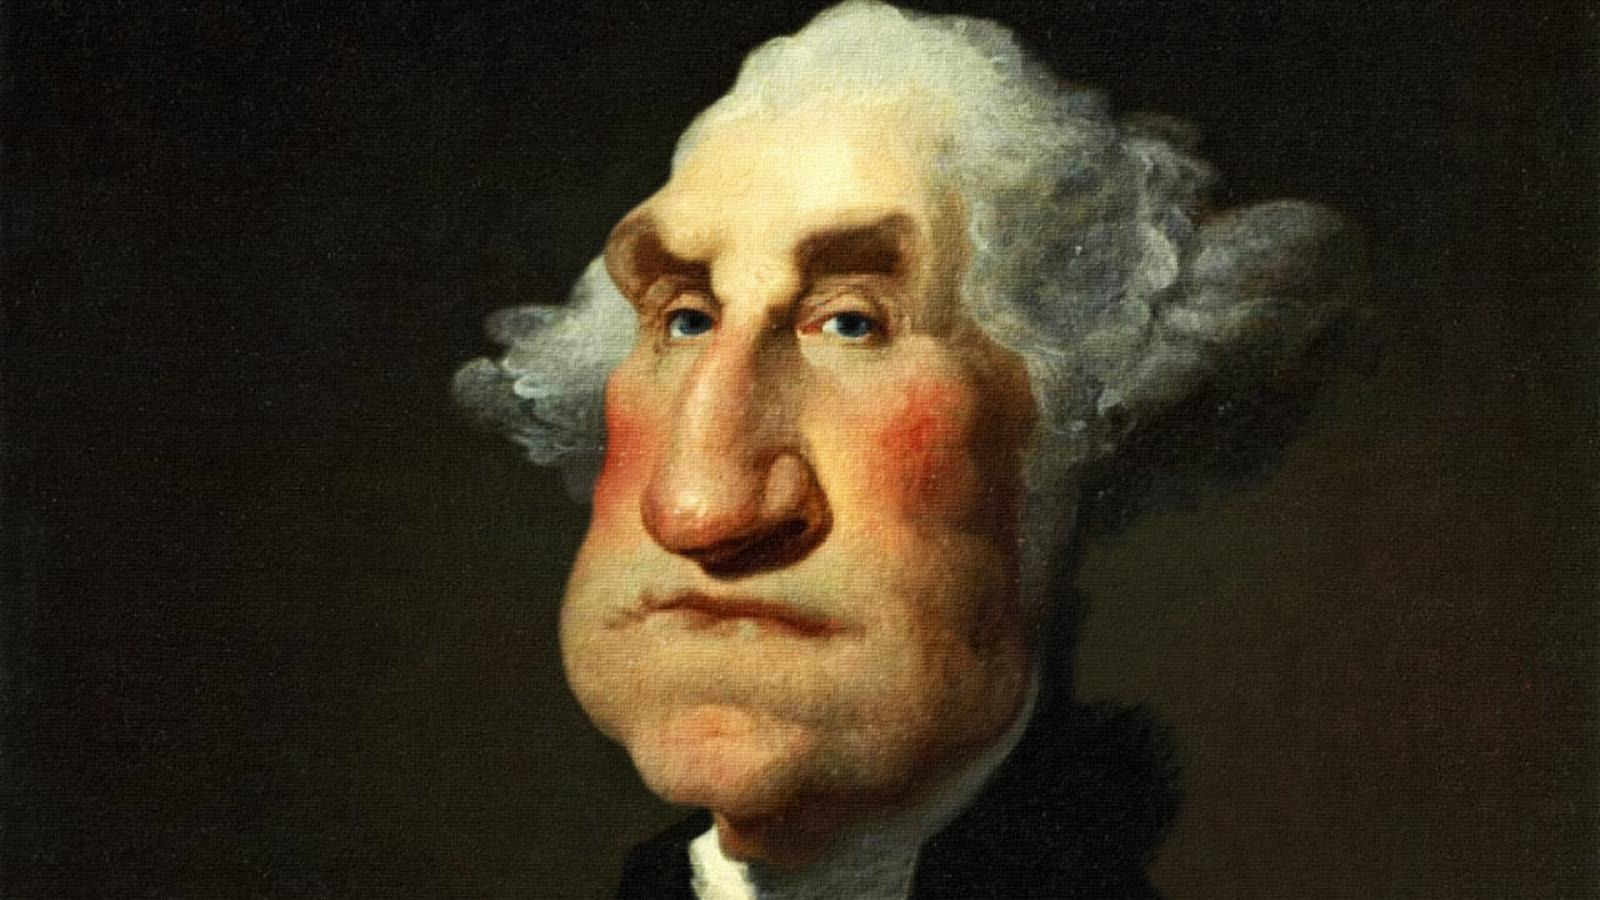 Happy Birthday George Washington: A Caricature look at some famous presidential faces